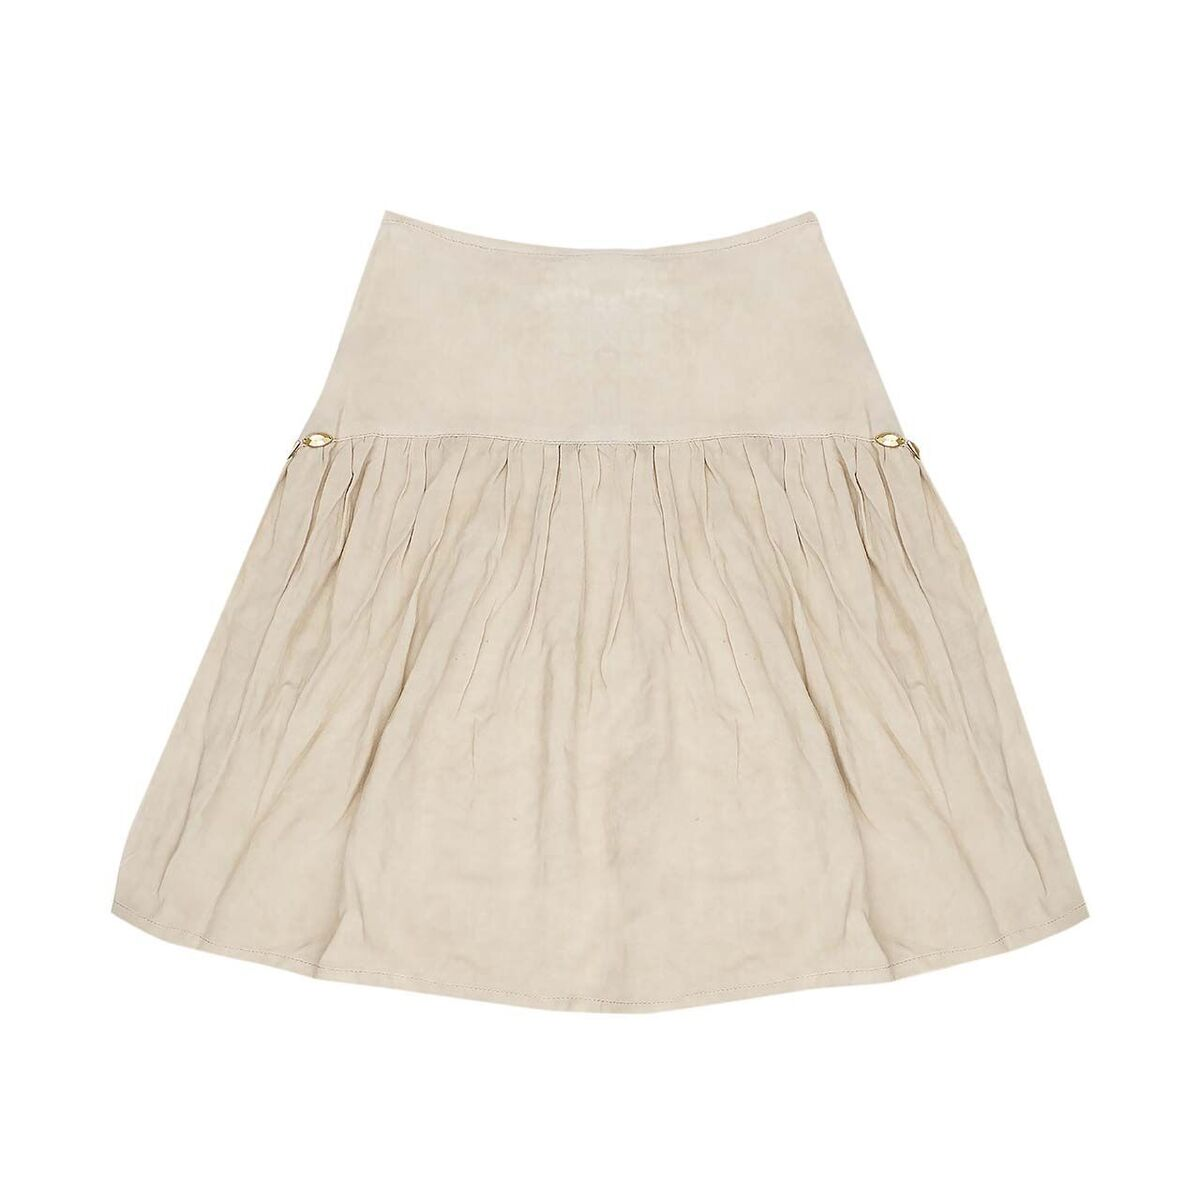 Bella and Lace Ponyo Mid Skirt Stone